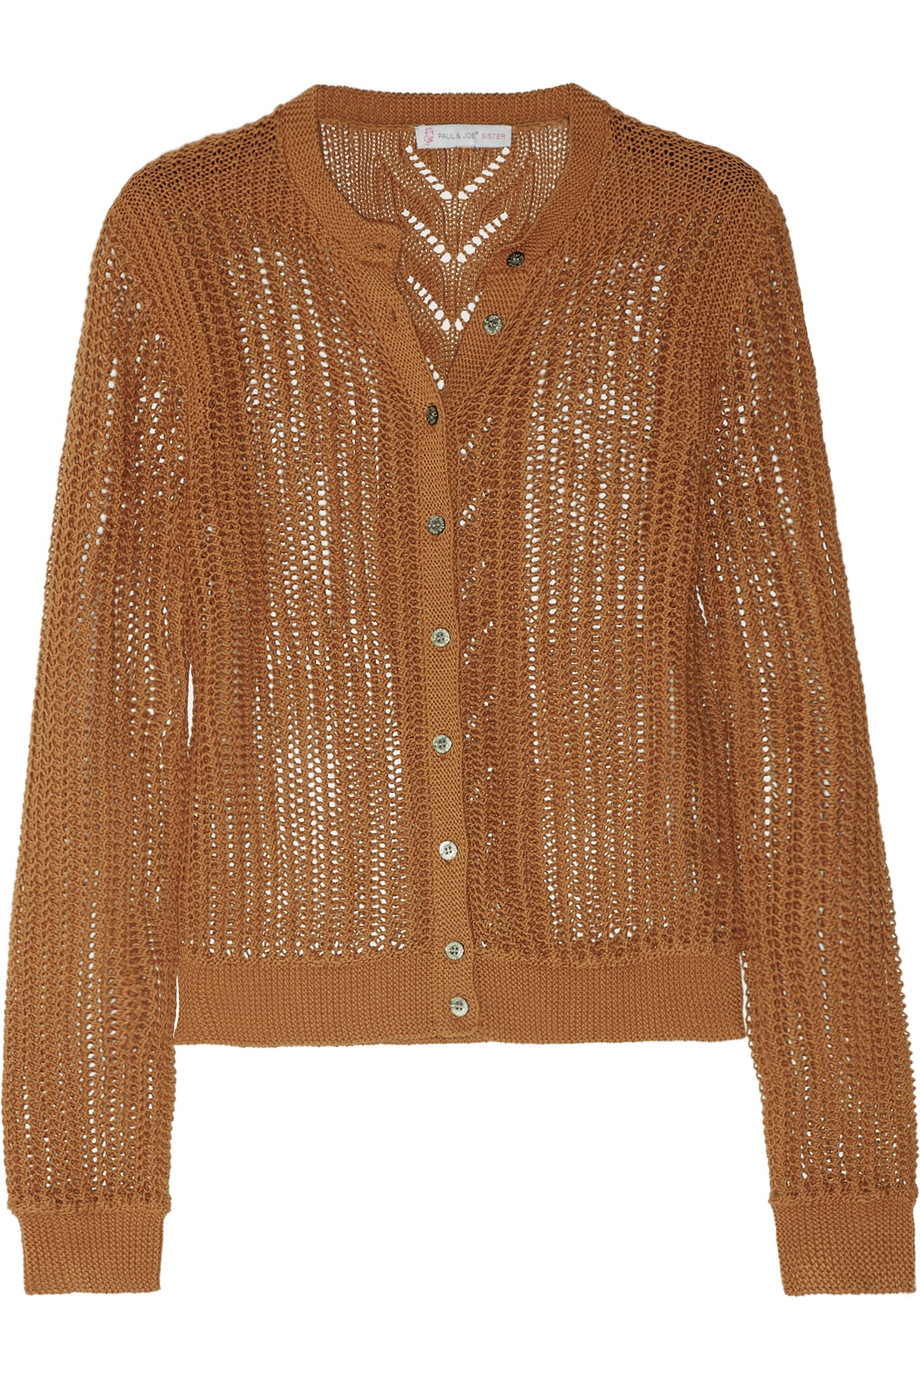 Paul & joe Cyprien Open-knit Cotton Cardigan in Brown | Lyst